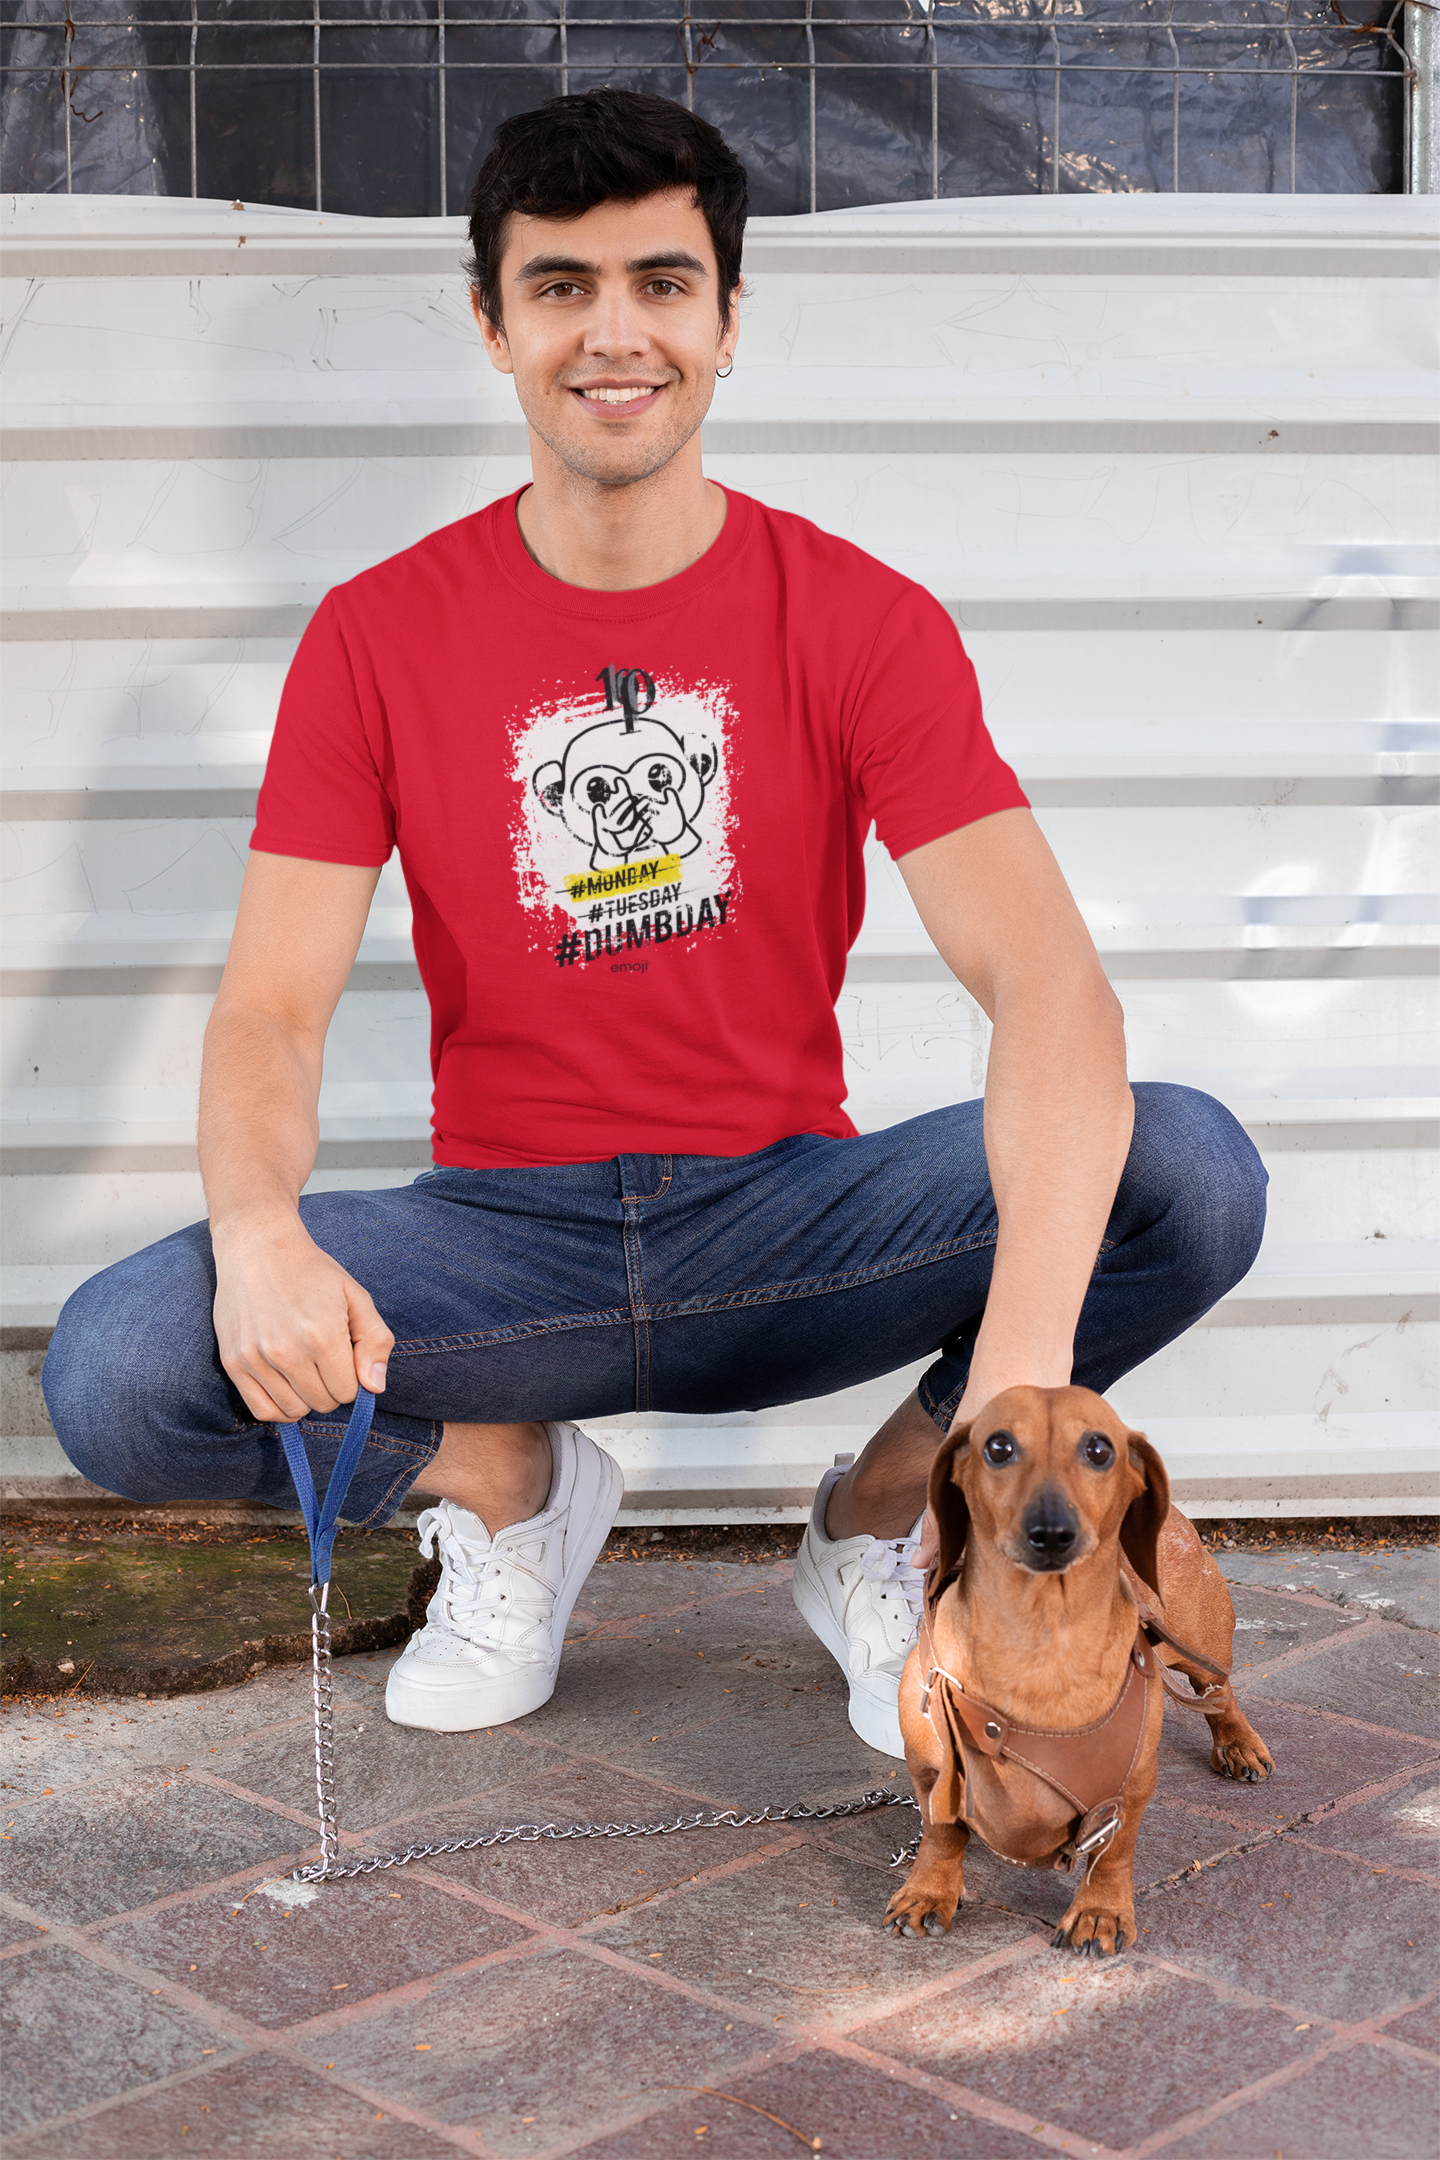 Official Licensed Emoji Printed T-Shirt for Men - DUMBDAY